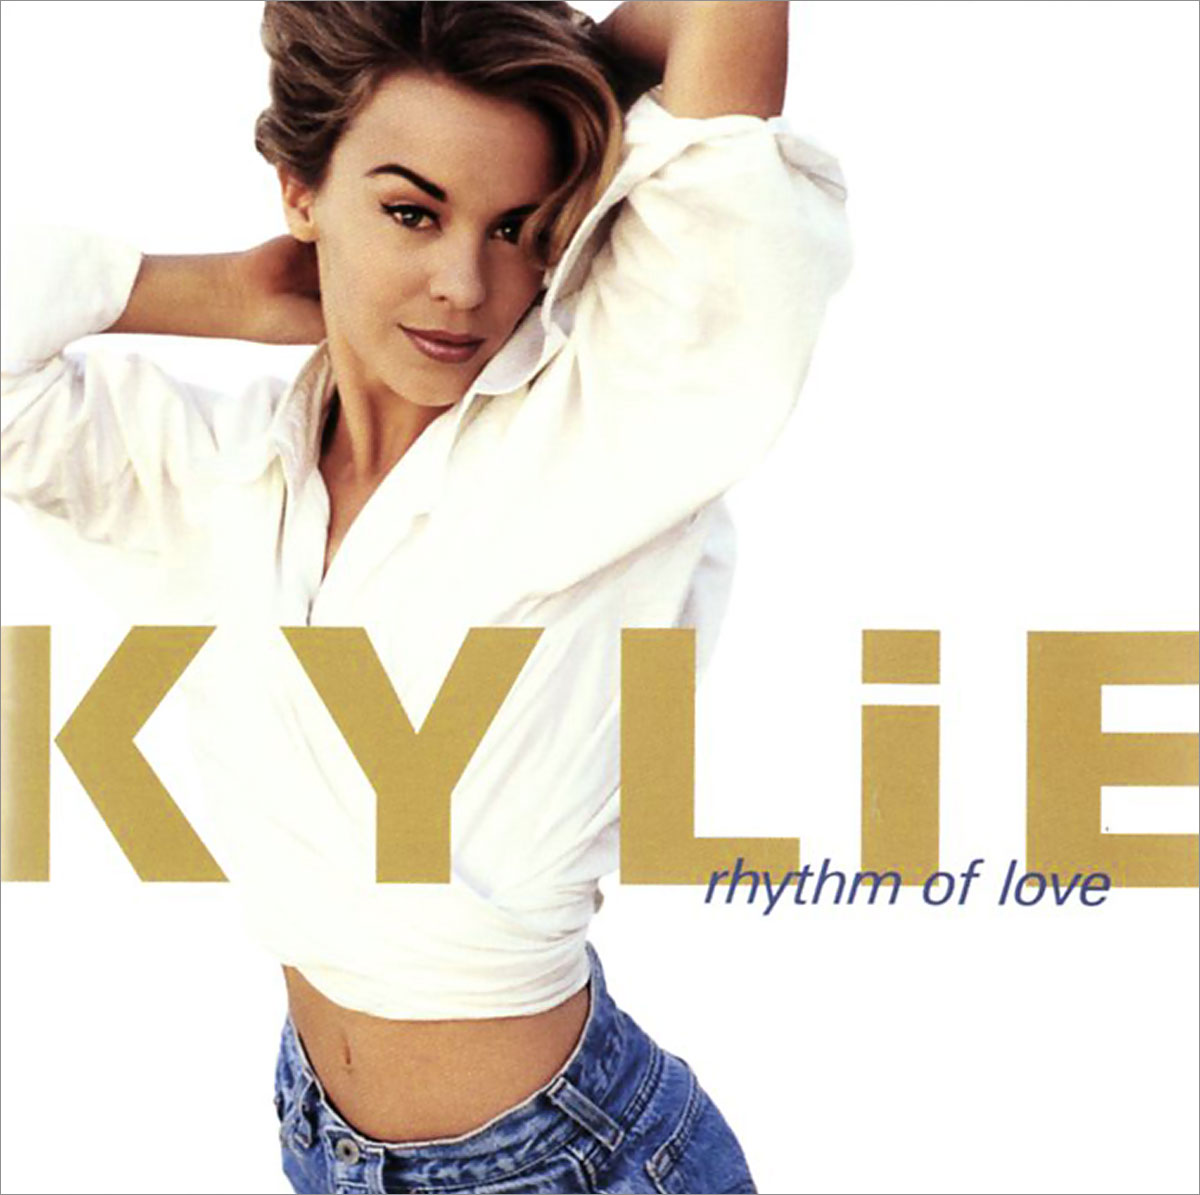 Кайли Миноуг Kylie Minogue. Rhythm Of Love кайли миноуг kylie minogue enjoy yourself 2 cd dvd lp